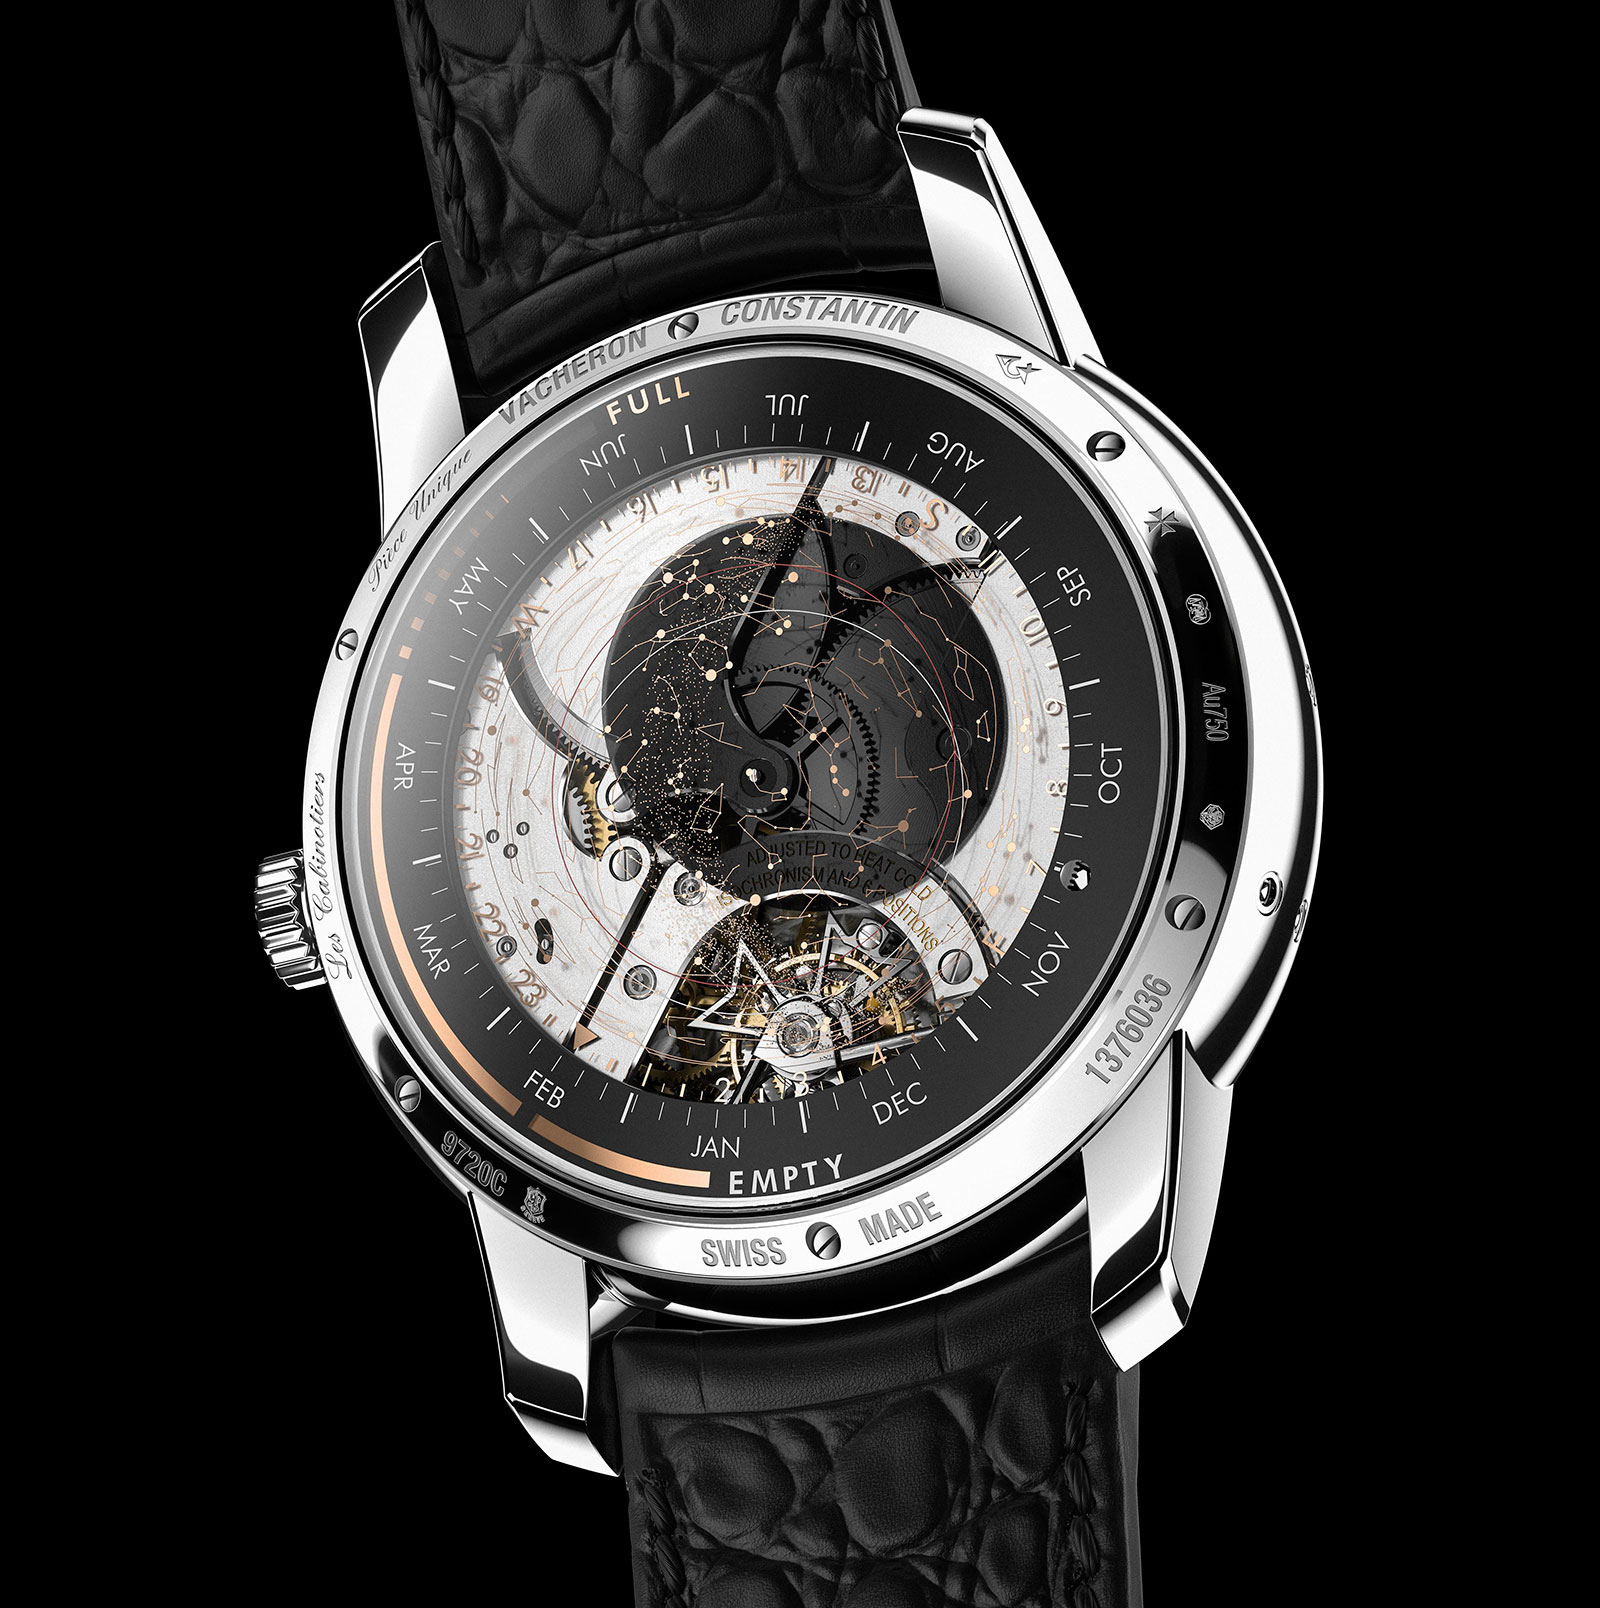 Vacheron Constantin Celestia Astronomical Grand Complication 3600-9